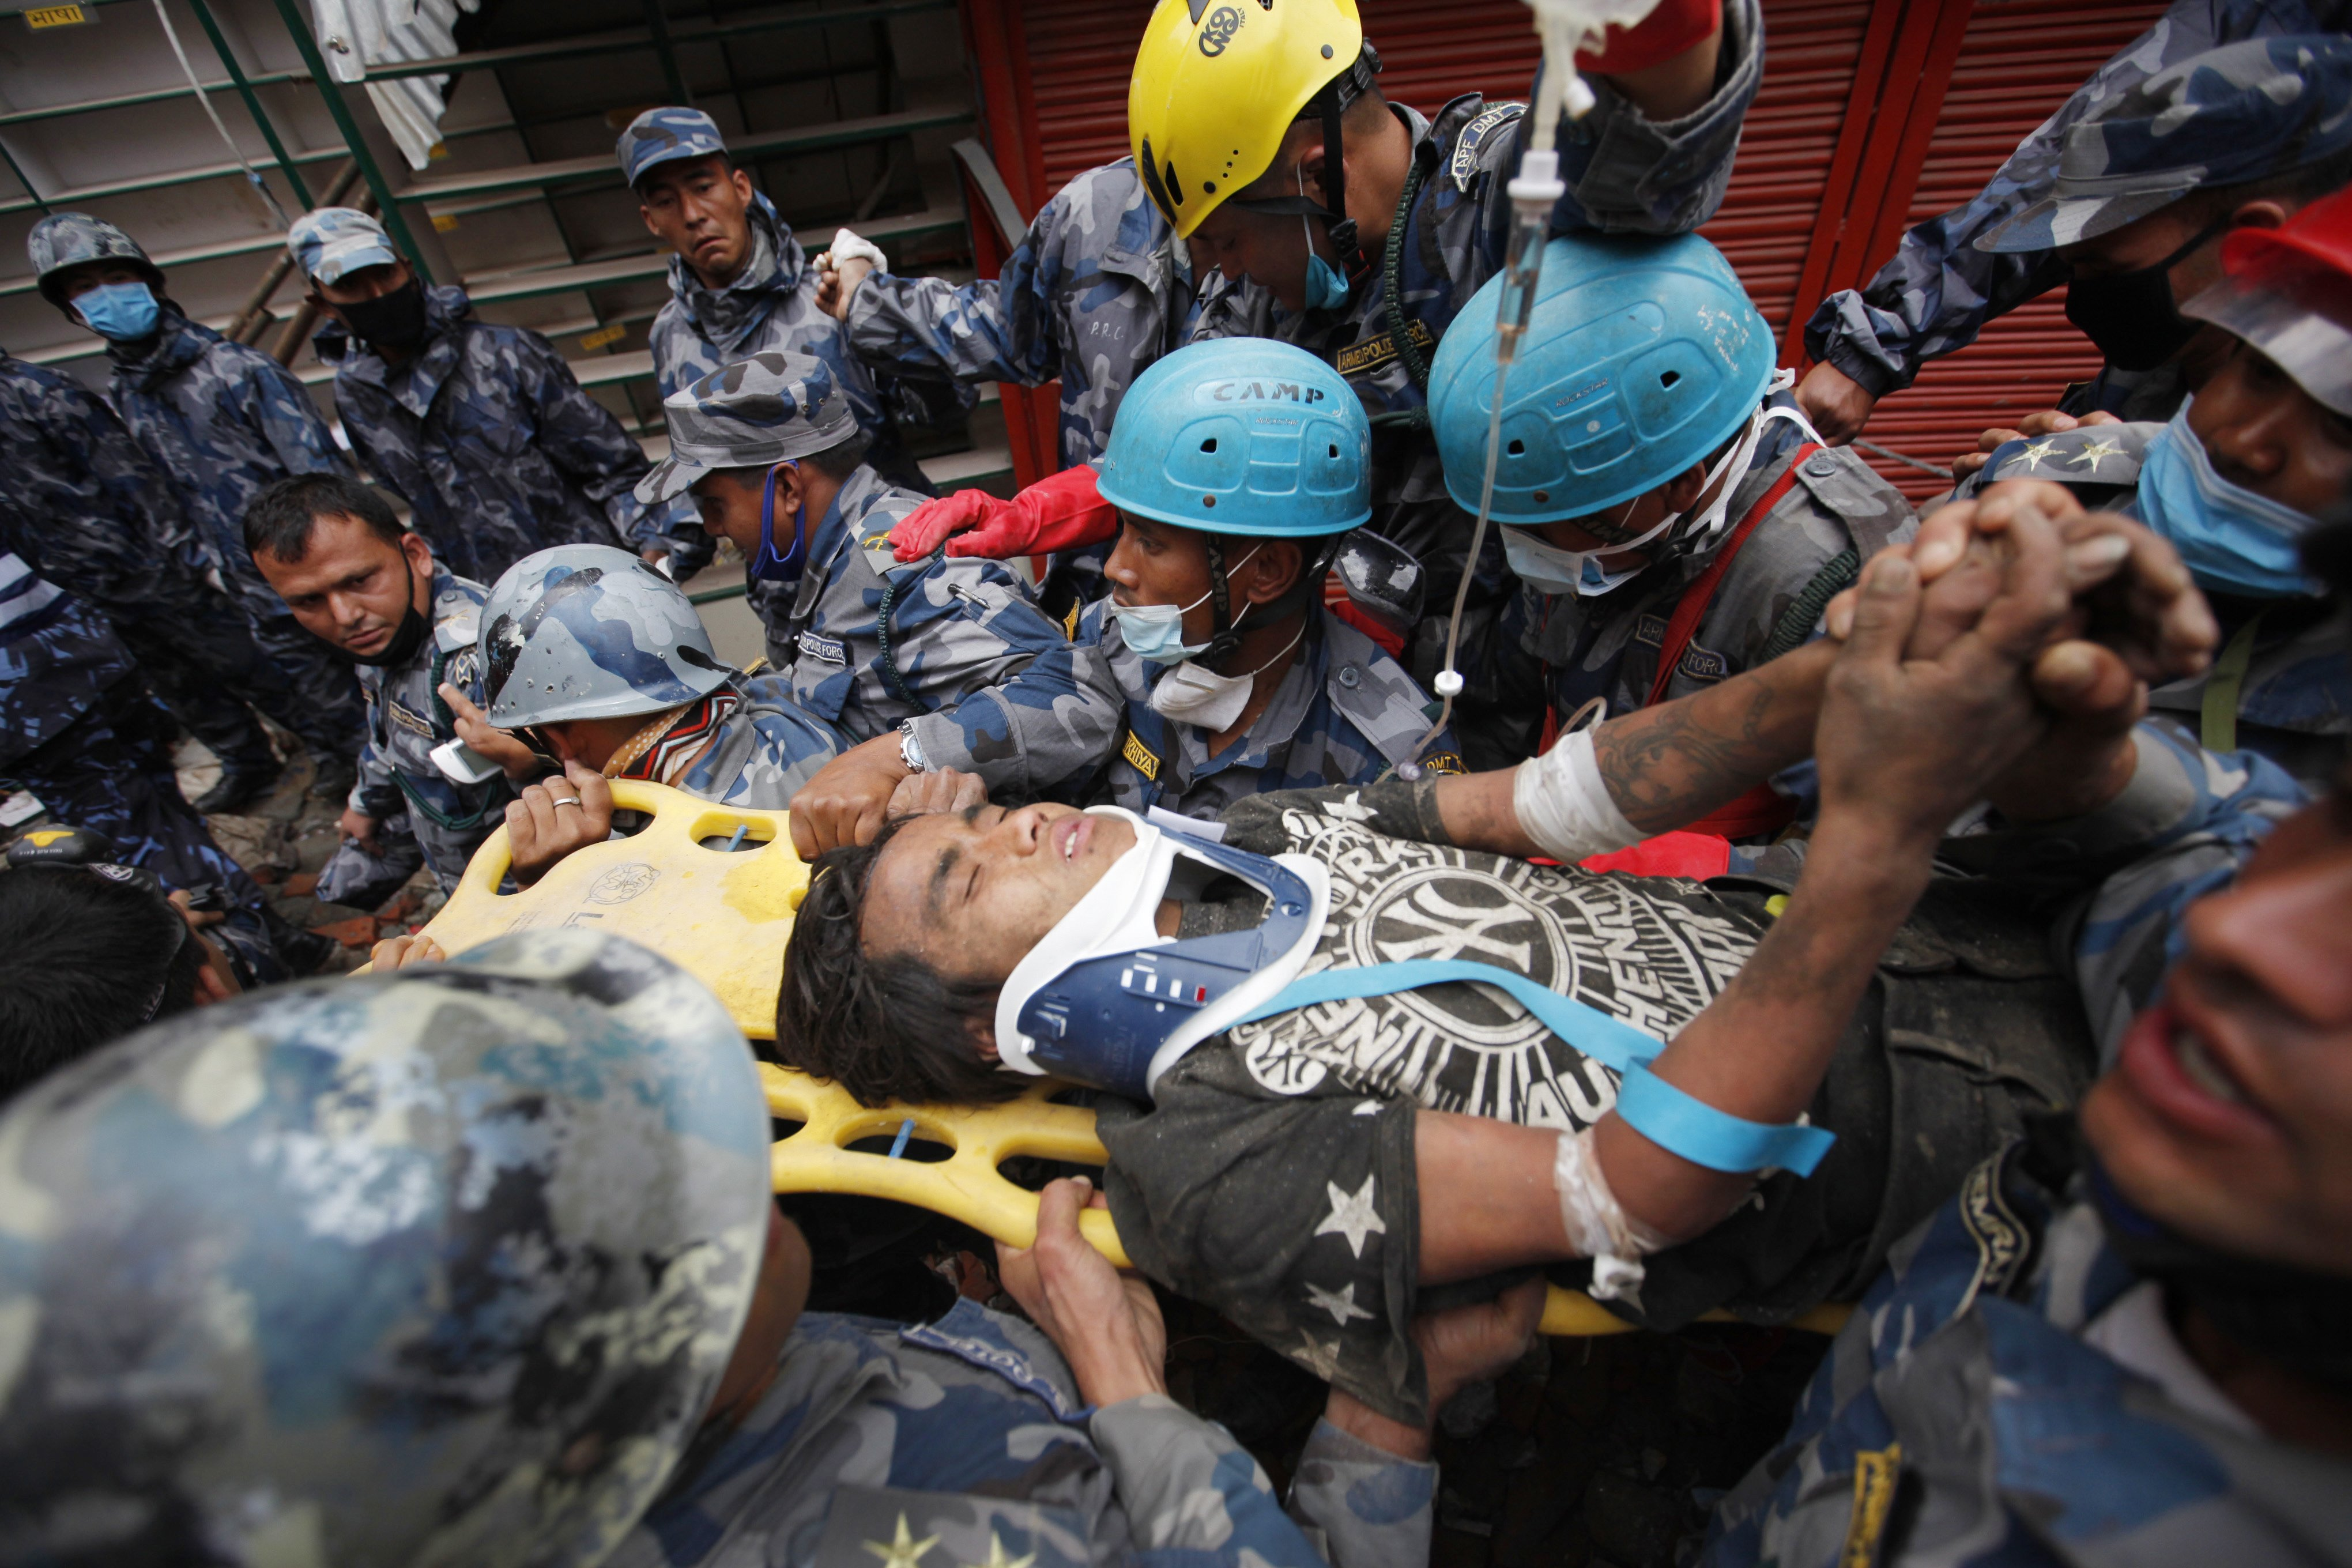 Pemba Tamang is carried on a stretcher after being rescued by Nepalese policemen and U.S. rescue workers from a building that collapsed five days ago in Kathmandu, Nepal on April 30, 2015.